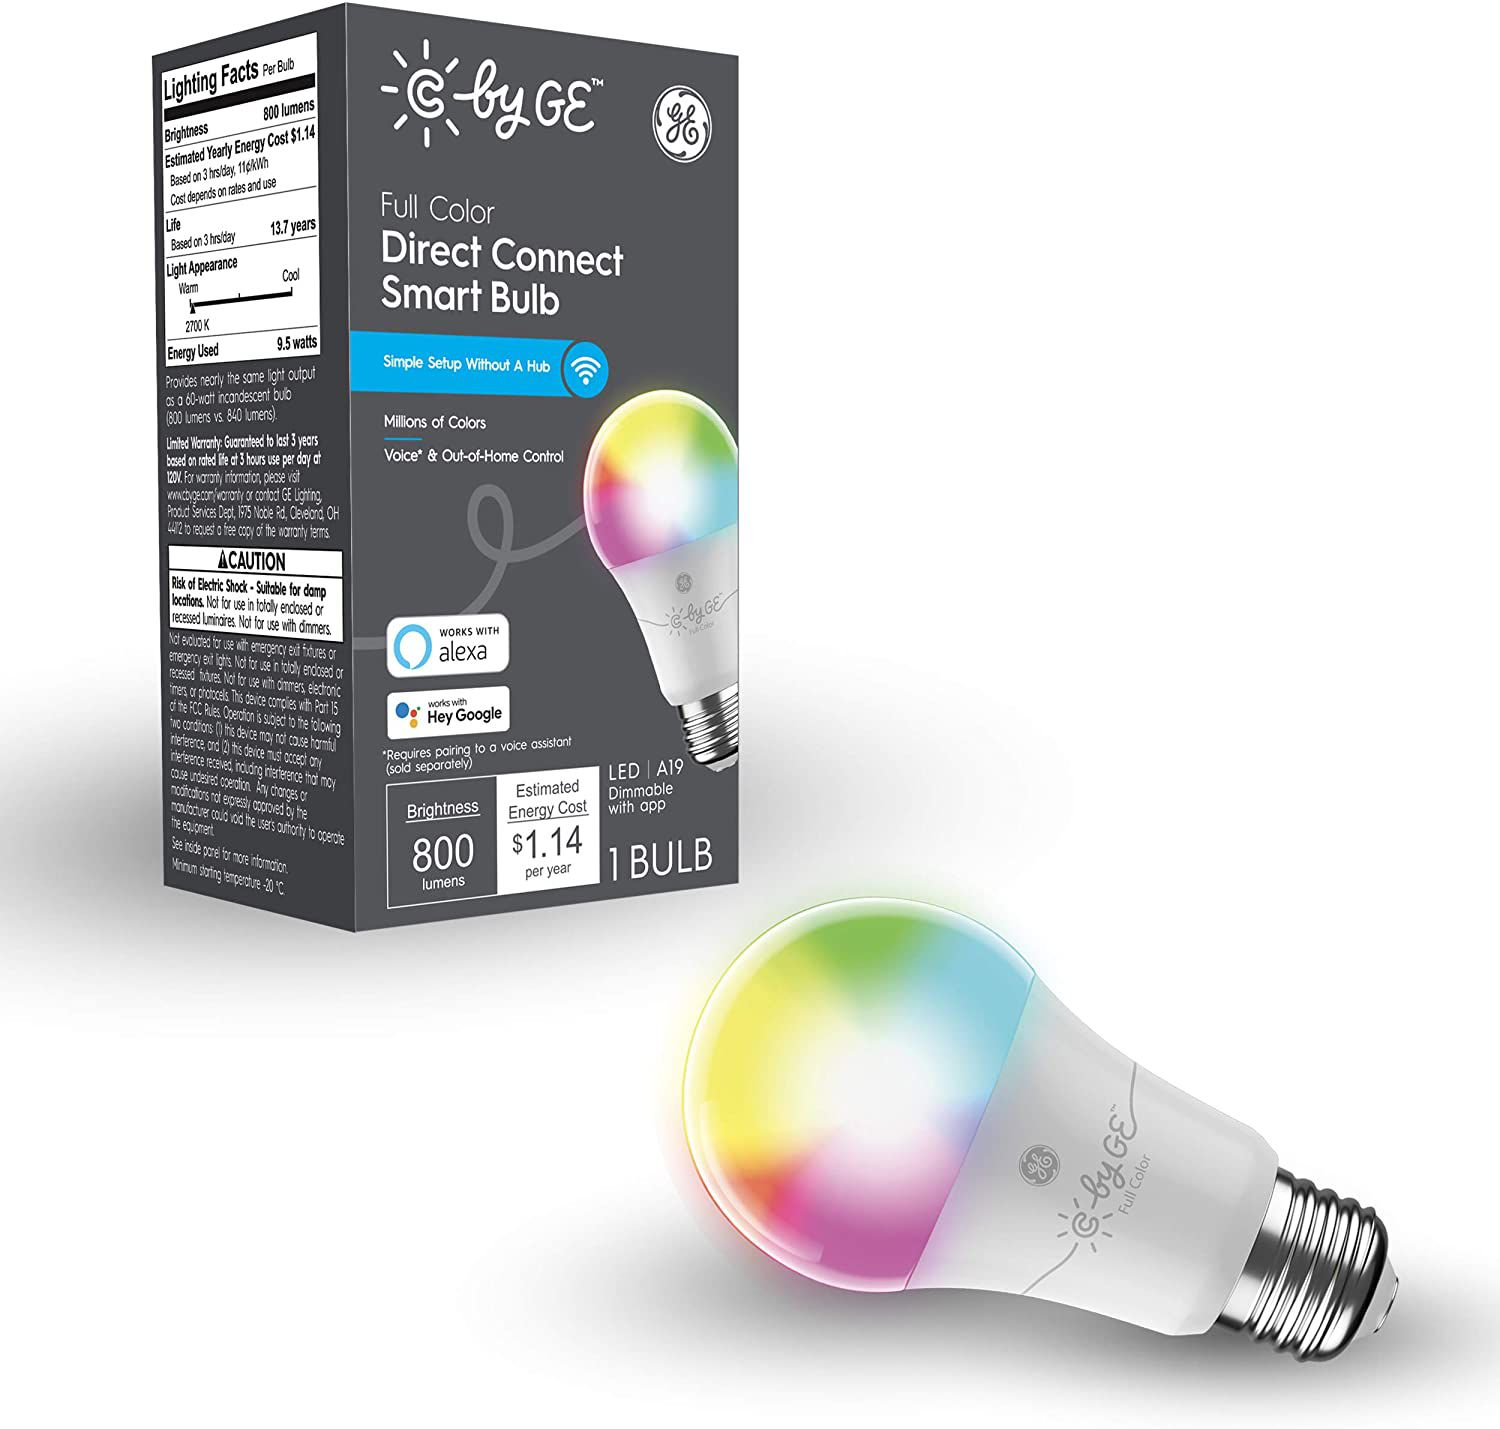 Full Color Direct Connect Smart Bulb